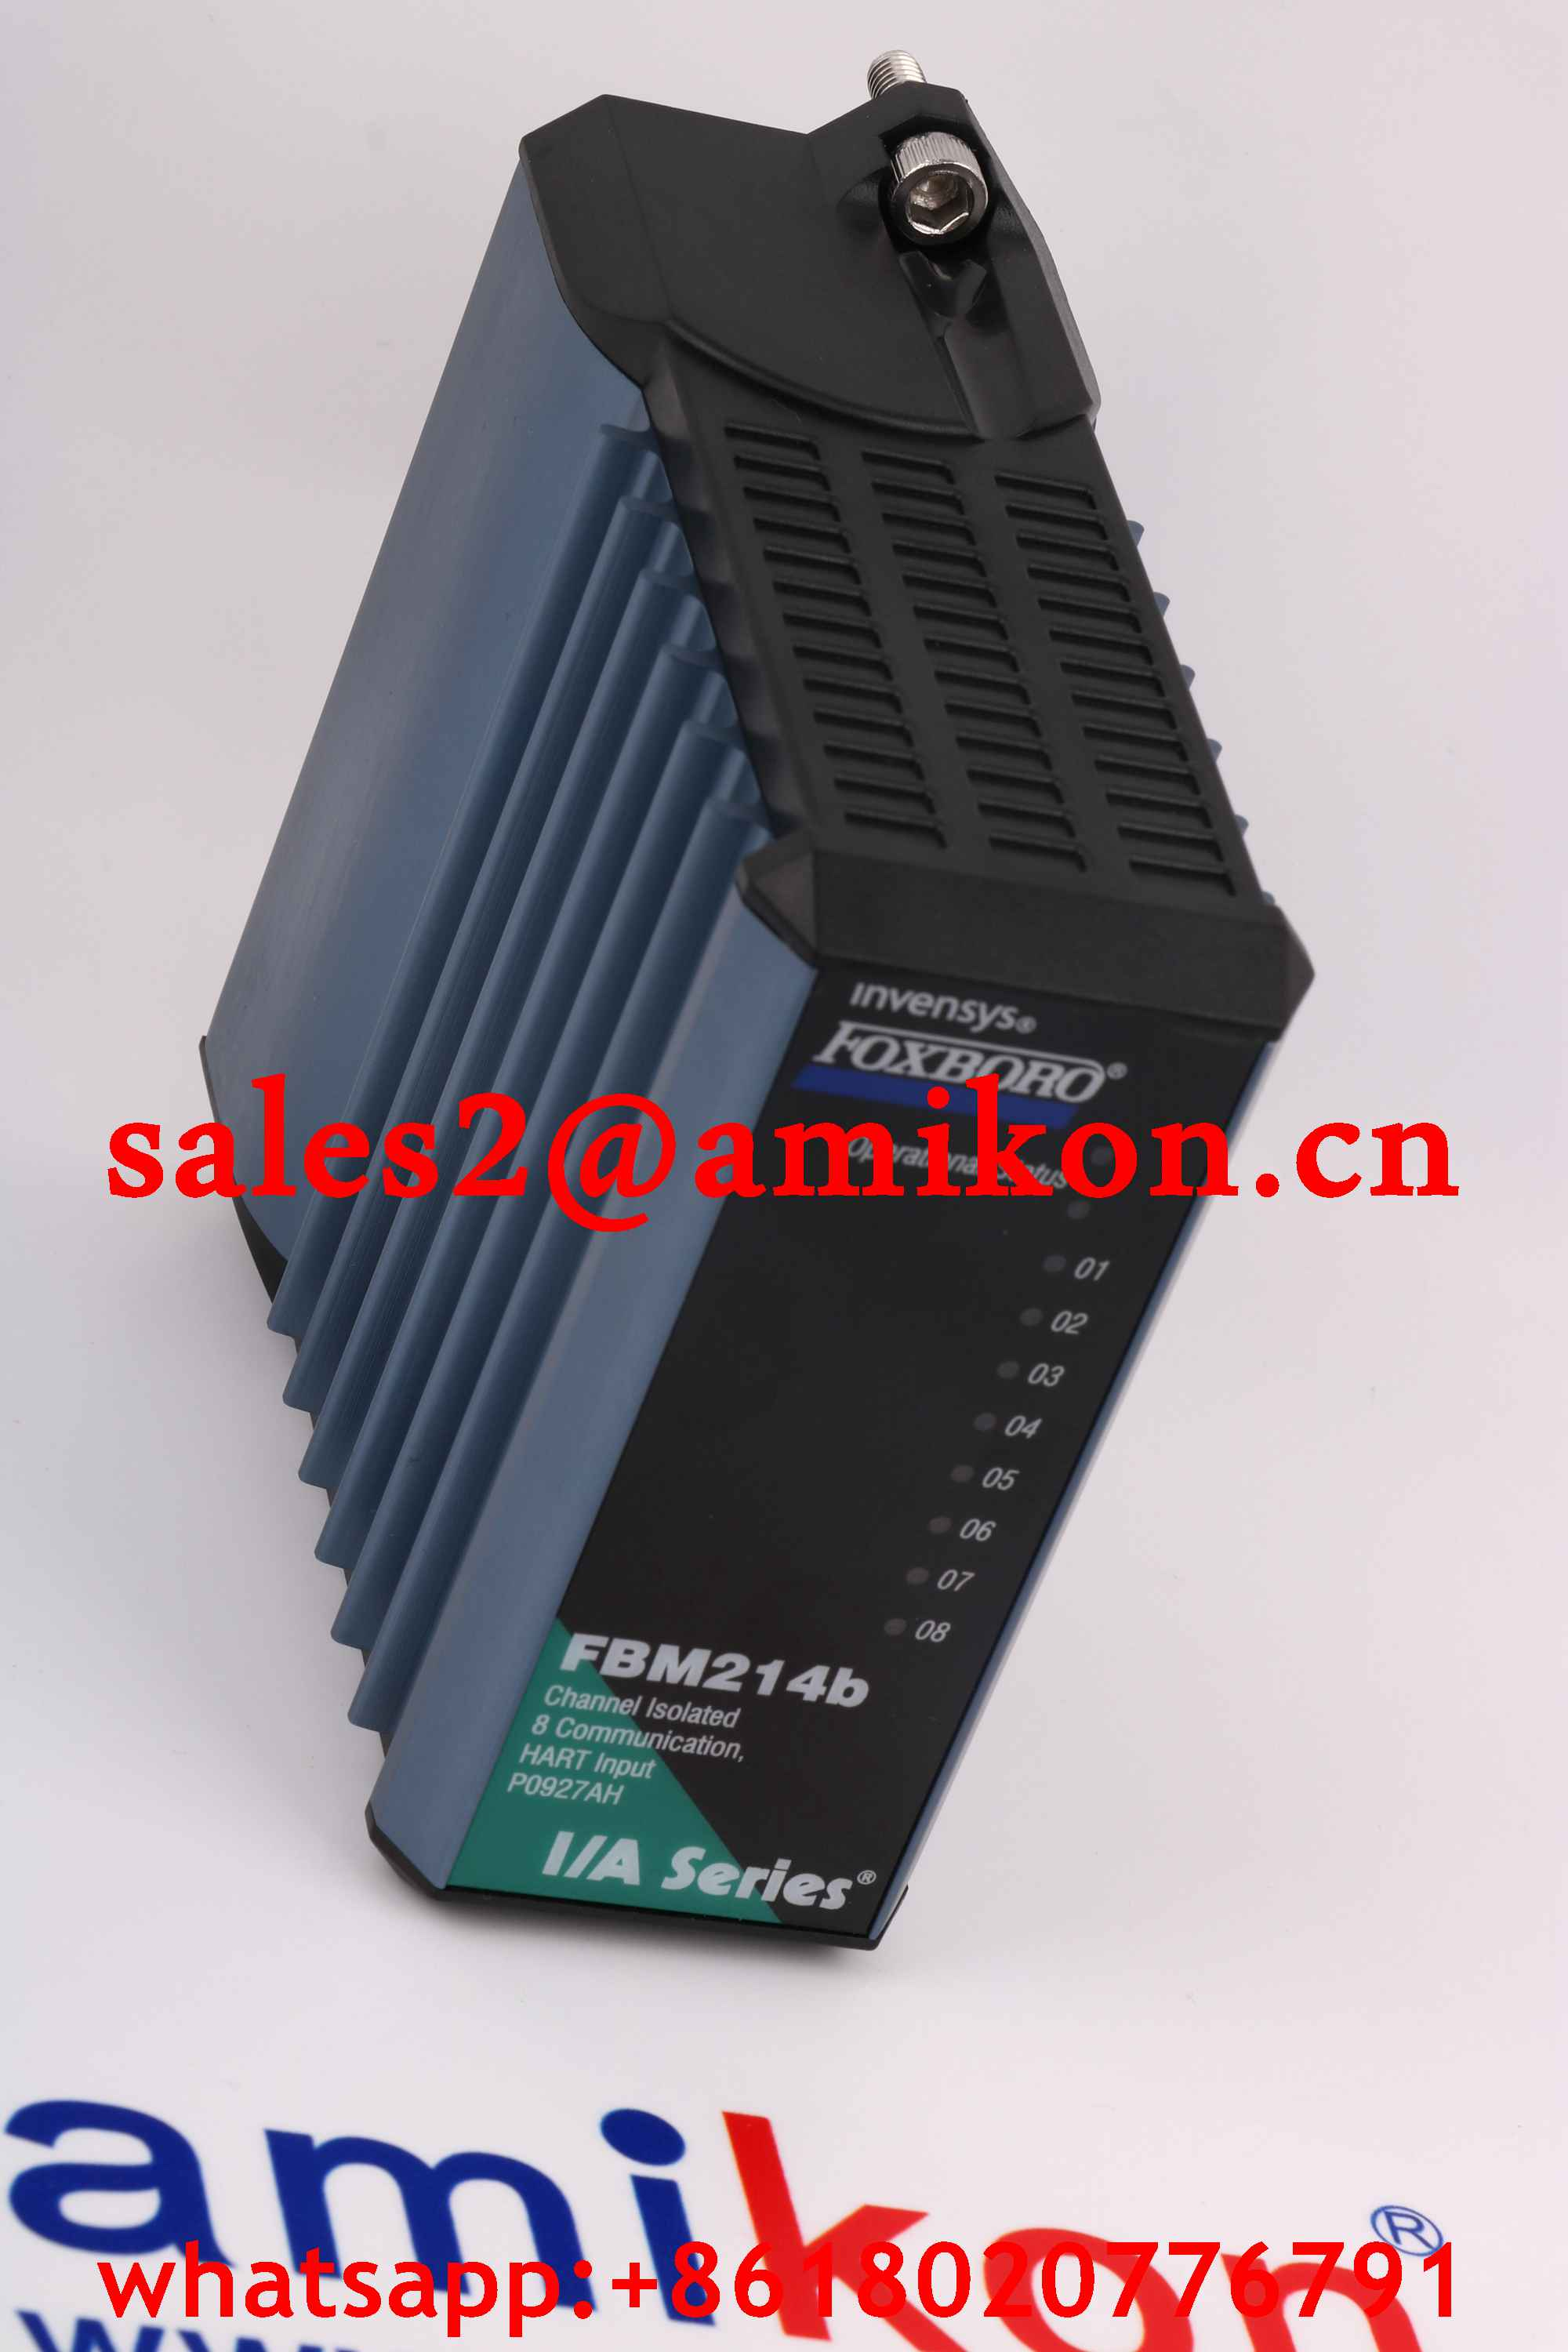 CI626A  3BSE005023R1 ABB sales2@amikon.cn PLC DCS Industry Control System Module